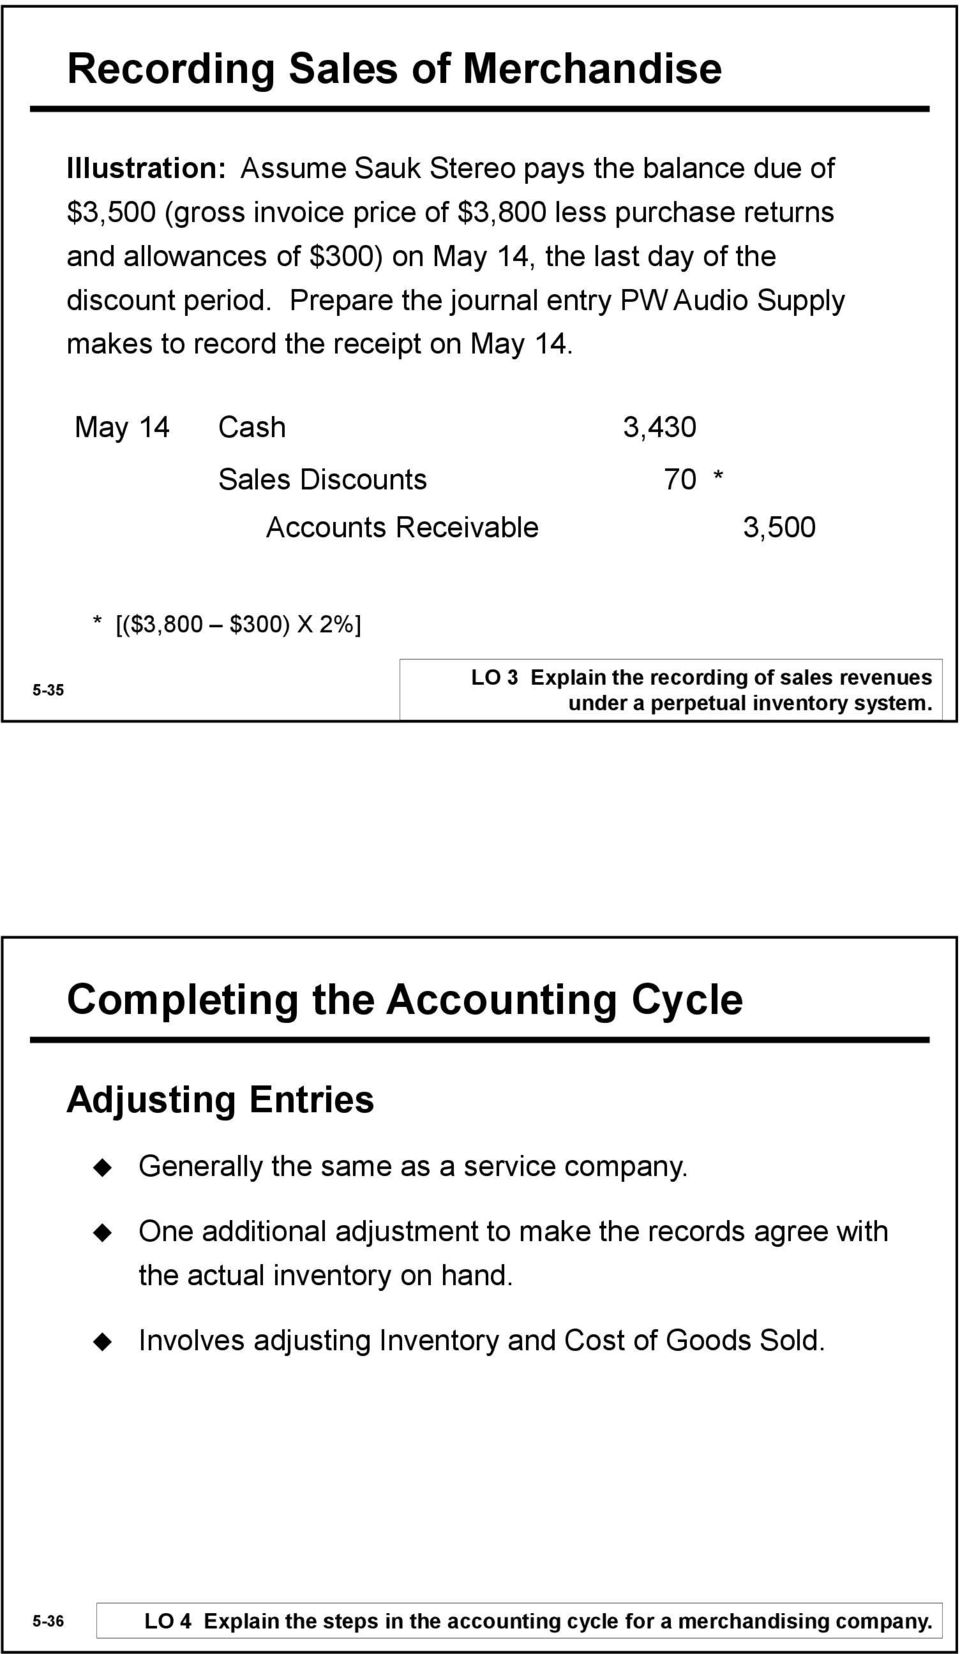 May 14 Cash 3,430 Sales Discounts 70 Accounts Receivable 3,500 * * [($3,800 $300) X 2%] 5-35 LO 3 Explain the recording of sales revenues under a perpetual inventory system.